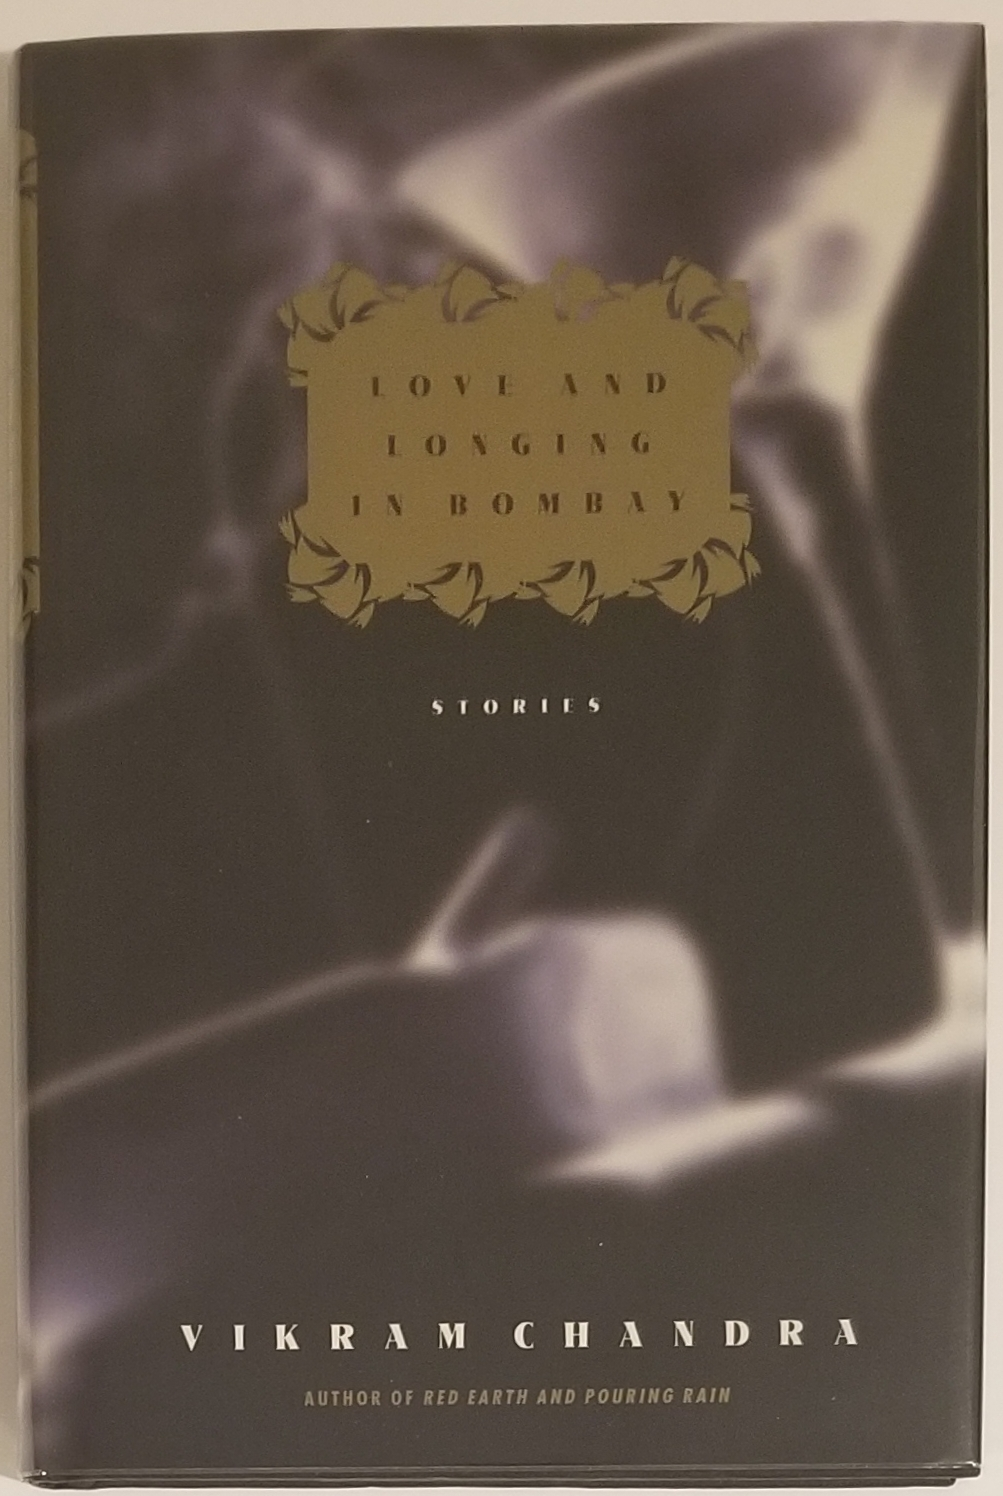 LOVE AND LONGING IN BOMBAY. Vikram Chandra.